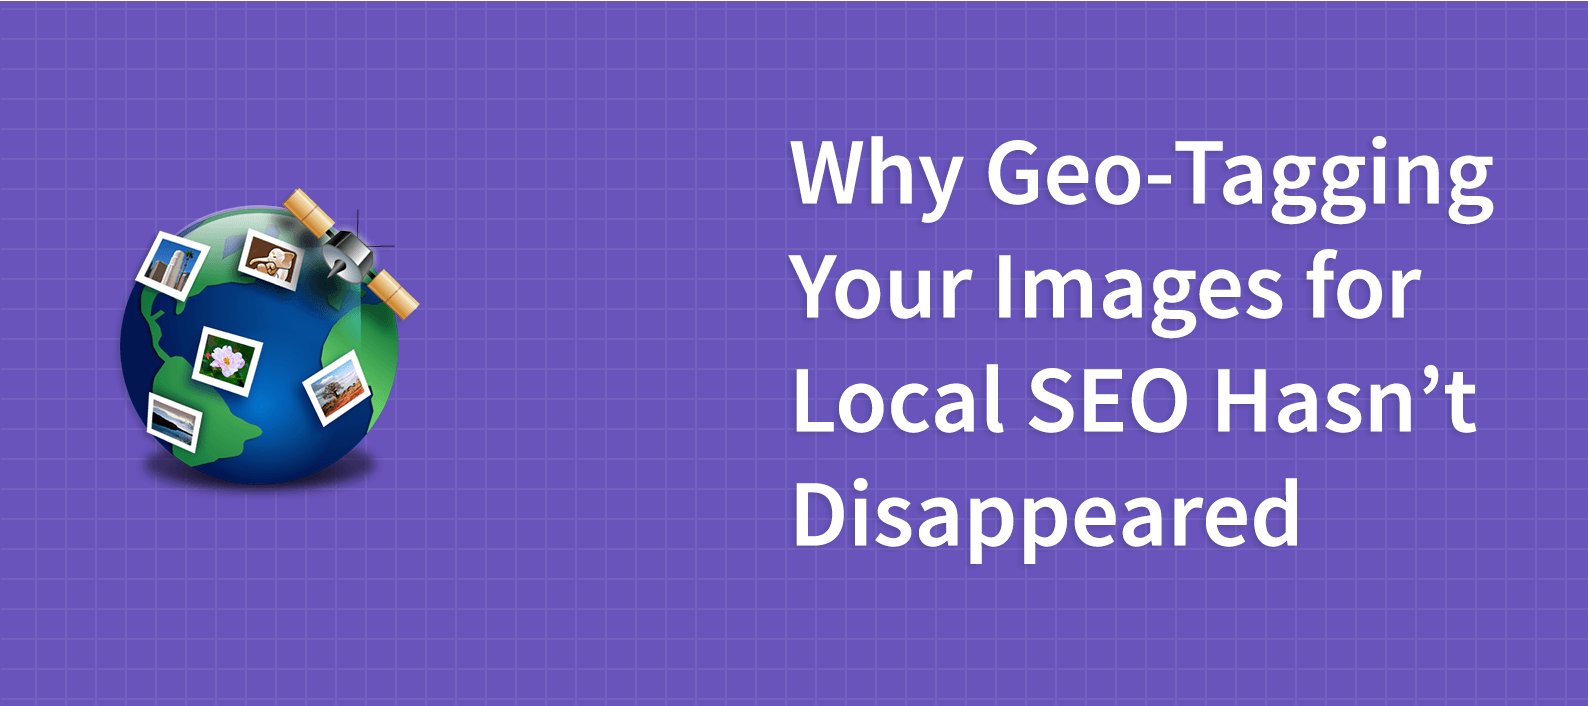 Why Geo-Tagging Your Images for Local SEO Hasn't Disappeared